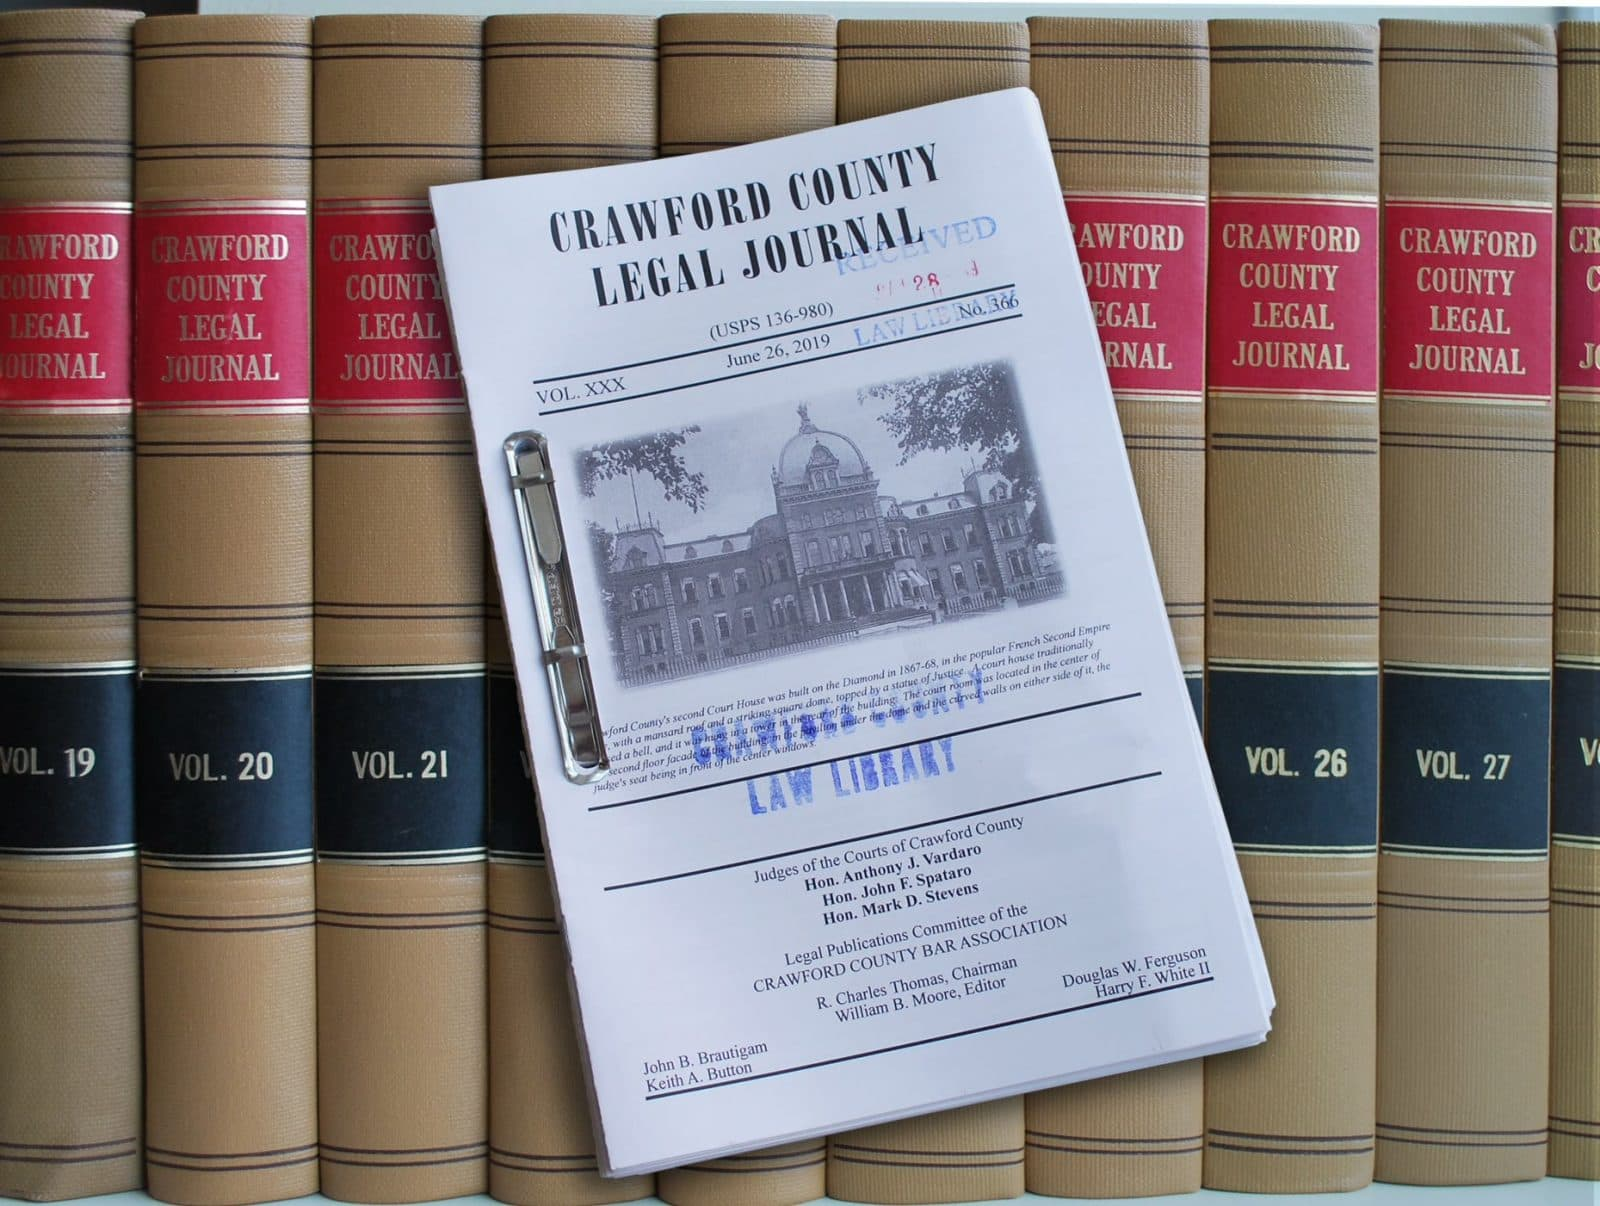 Crawford County Legal Journal